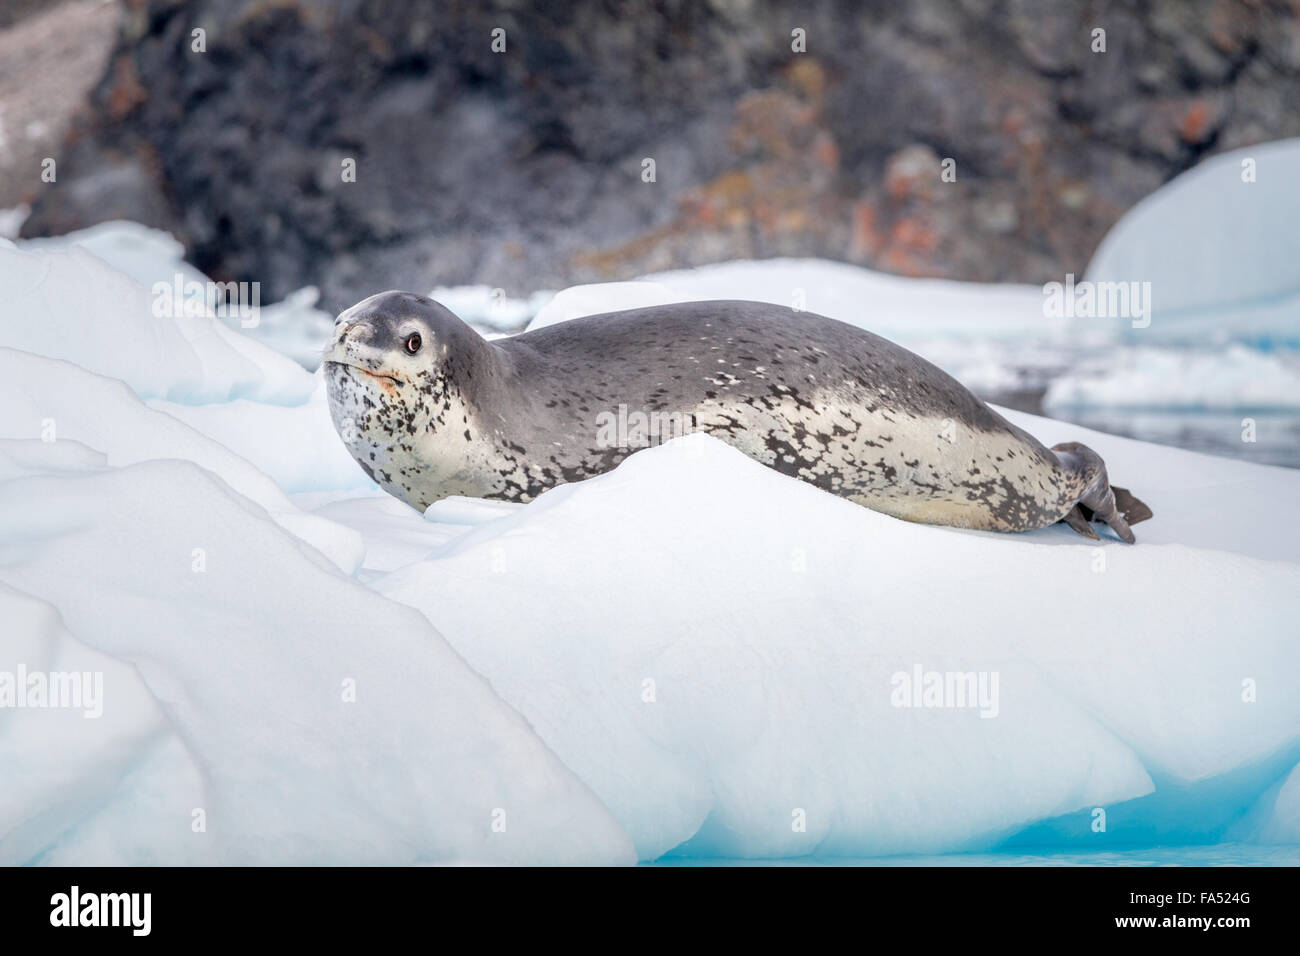 Leopard seal on an iceberg in Antarctica - looking at camera - Stock Image